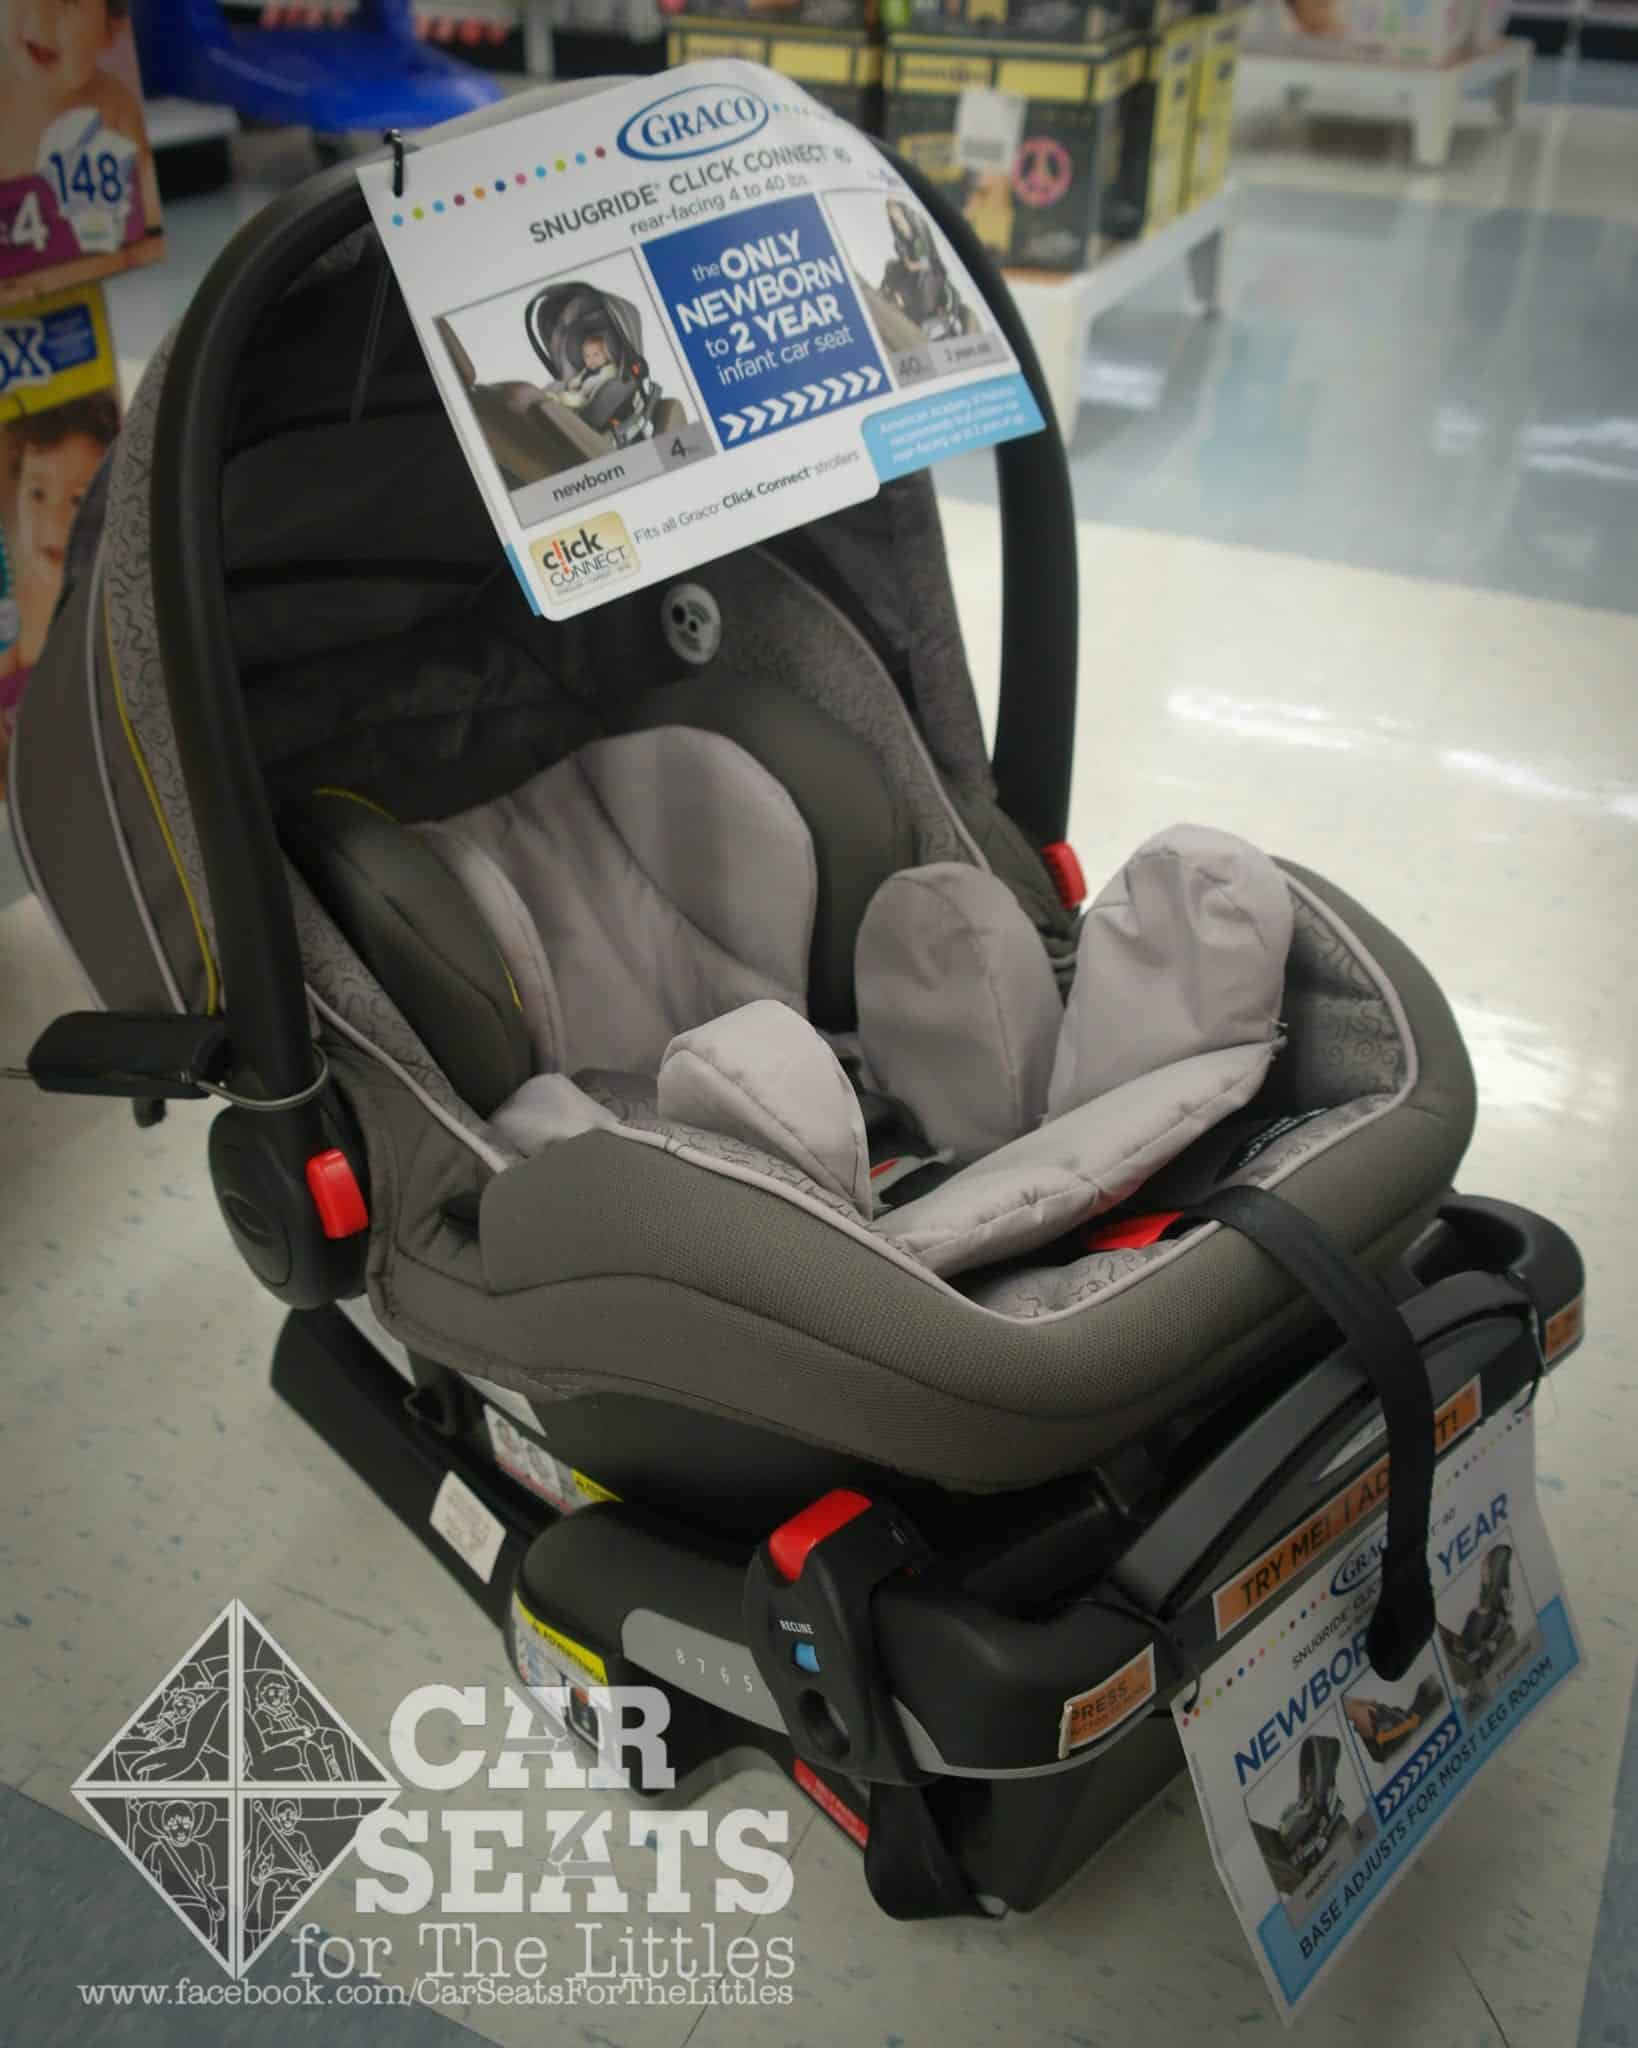 Car Seats For The Littles  Graco Rear Facing Only Seats  Whats